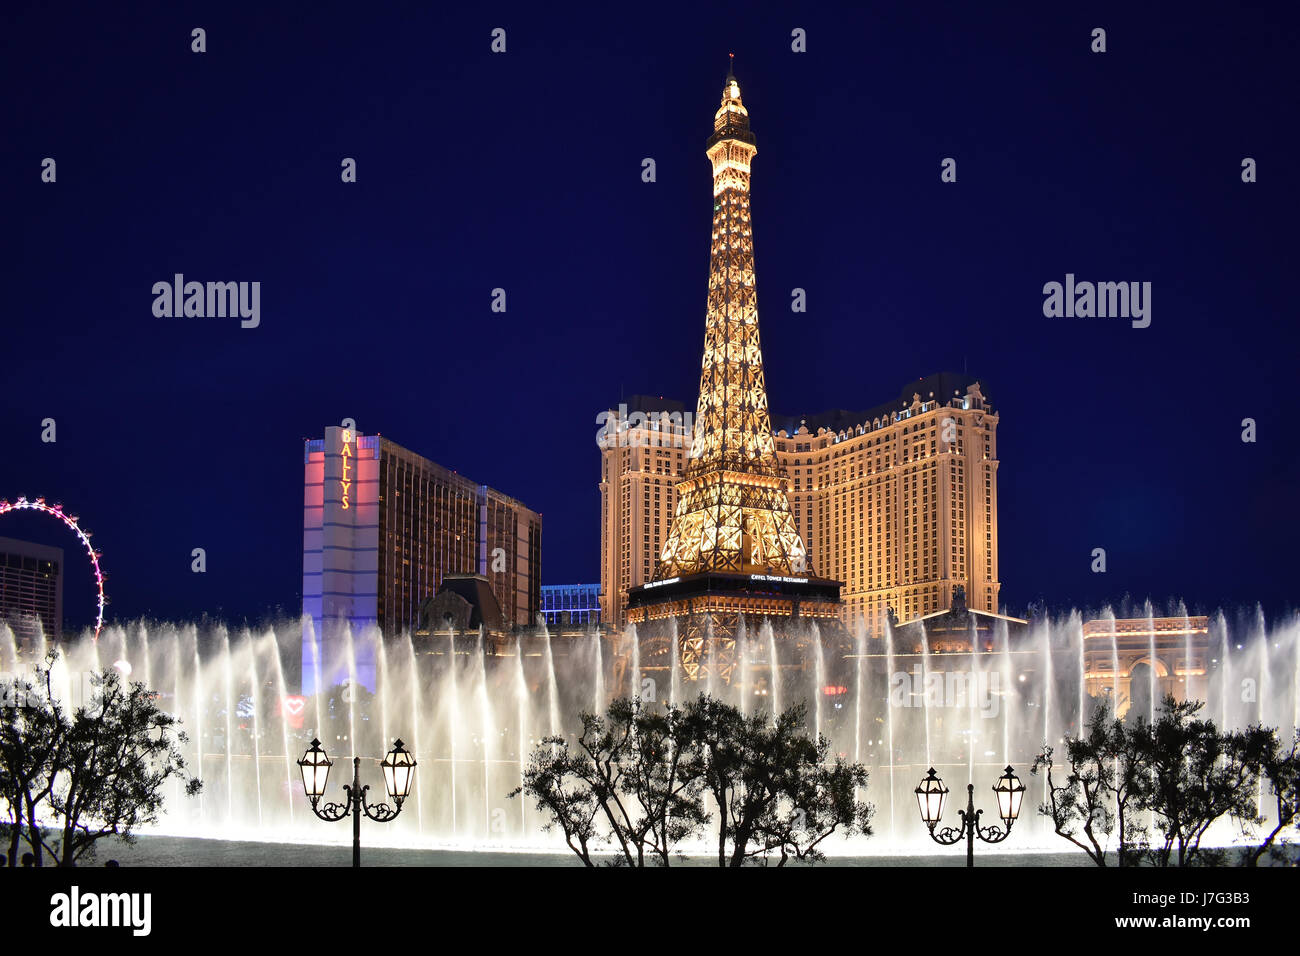 Las Vegas, APR 4: Night view of water dance in front of Paris and Bellagio Hotel and Casino on APR 4, 2017 at Las Stock Photo